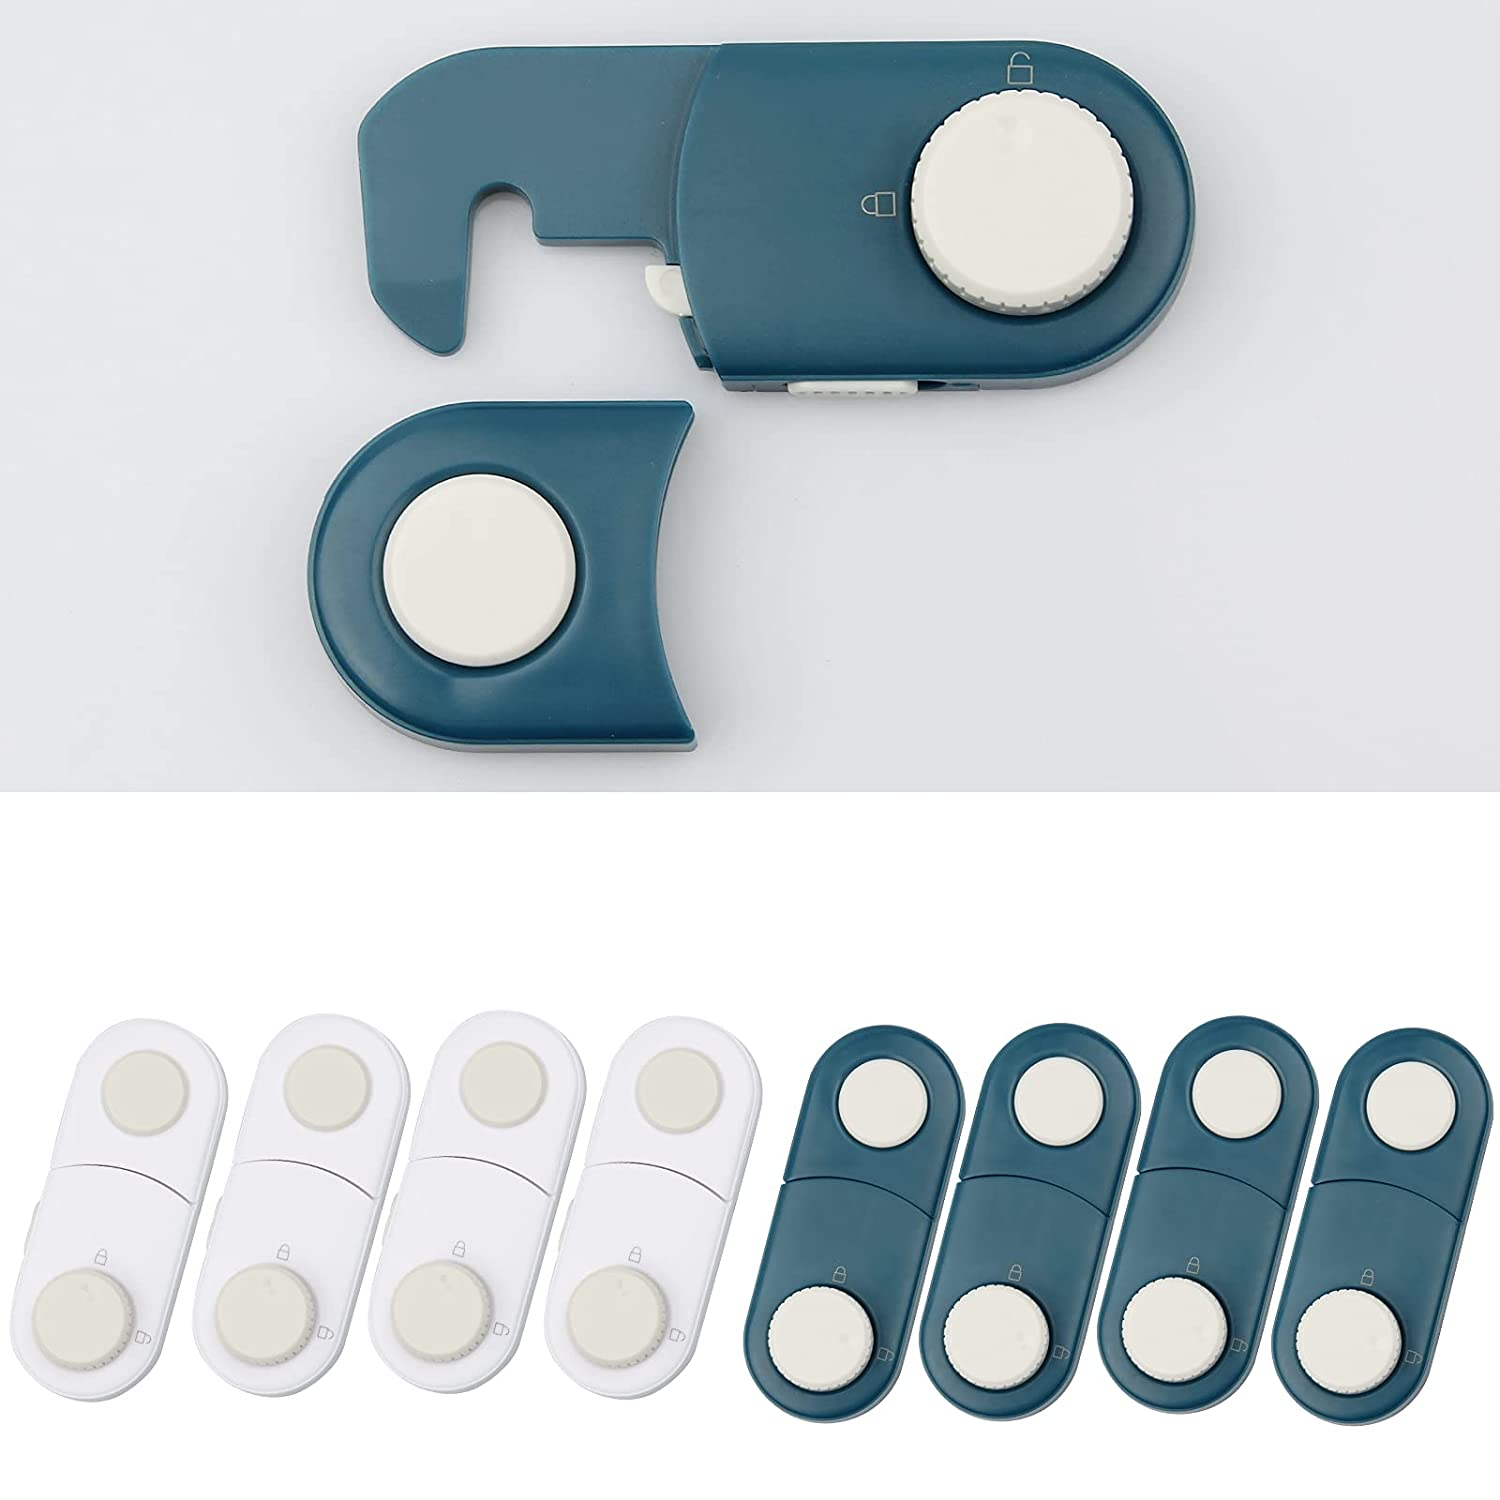 Drawer Locks Baby Proofing Cabinet Locks Child Safety Products Child Proof Cabinet Latches with 3M Adhesive (8 PACK)Kids Childproof key Kit for Refrigerator Fridge Glide Knobs Oven Pantry Home Saftey